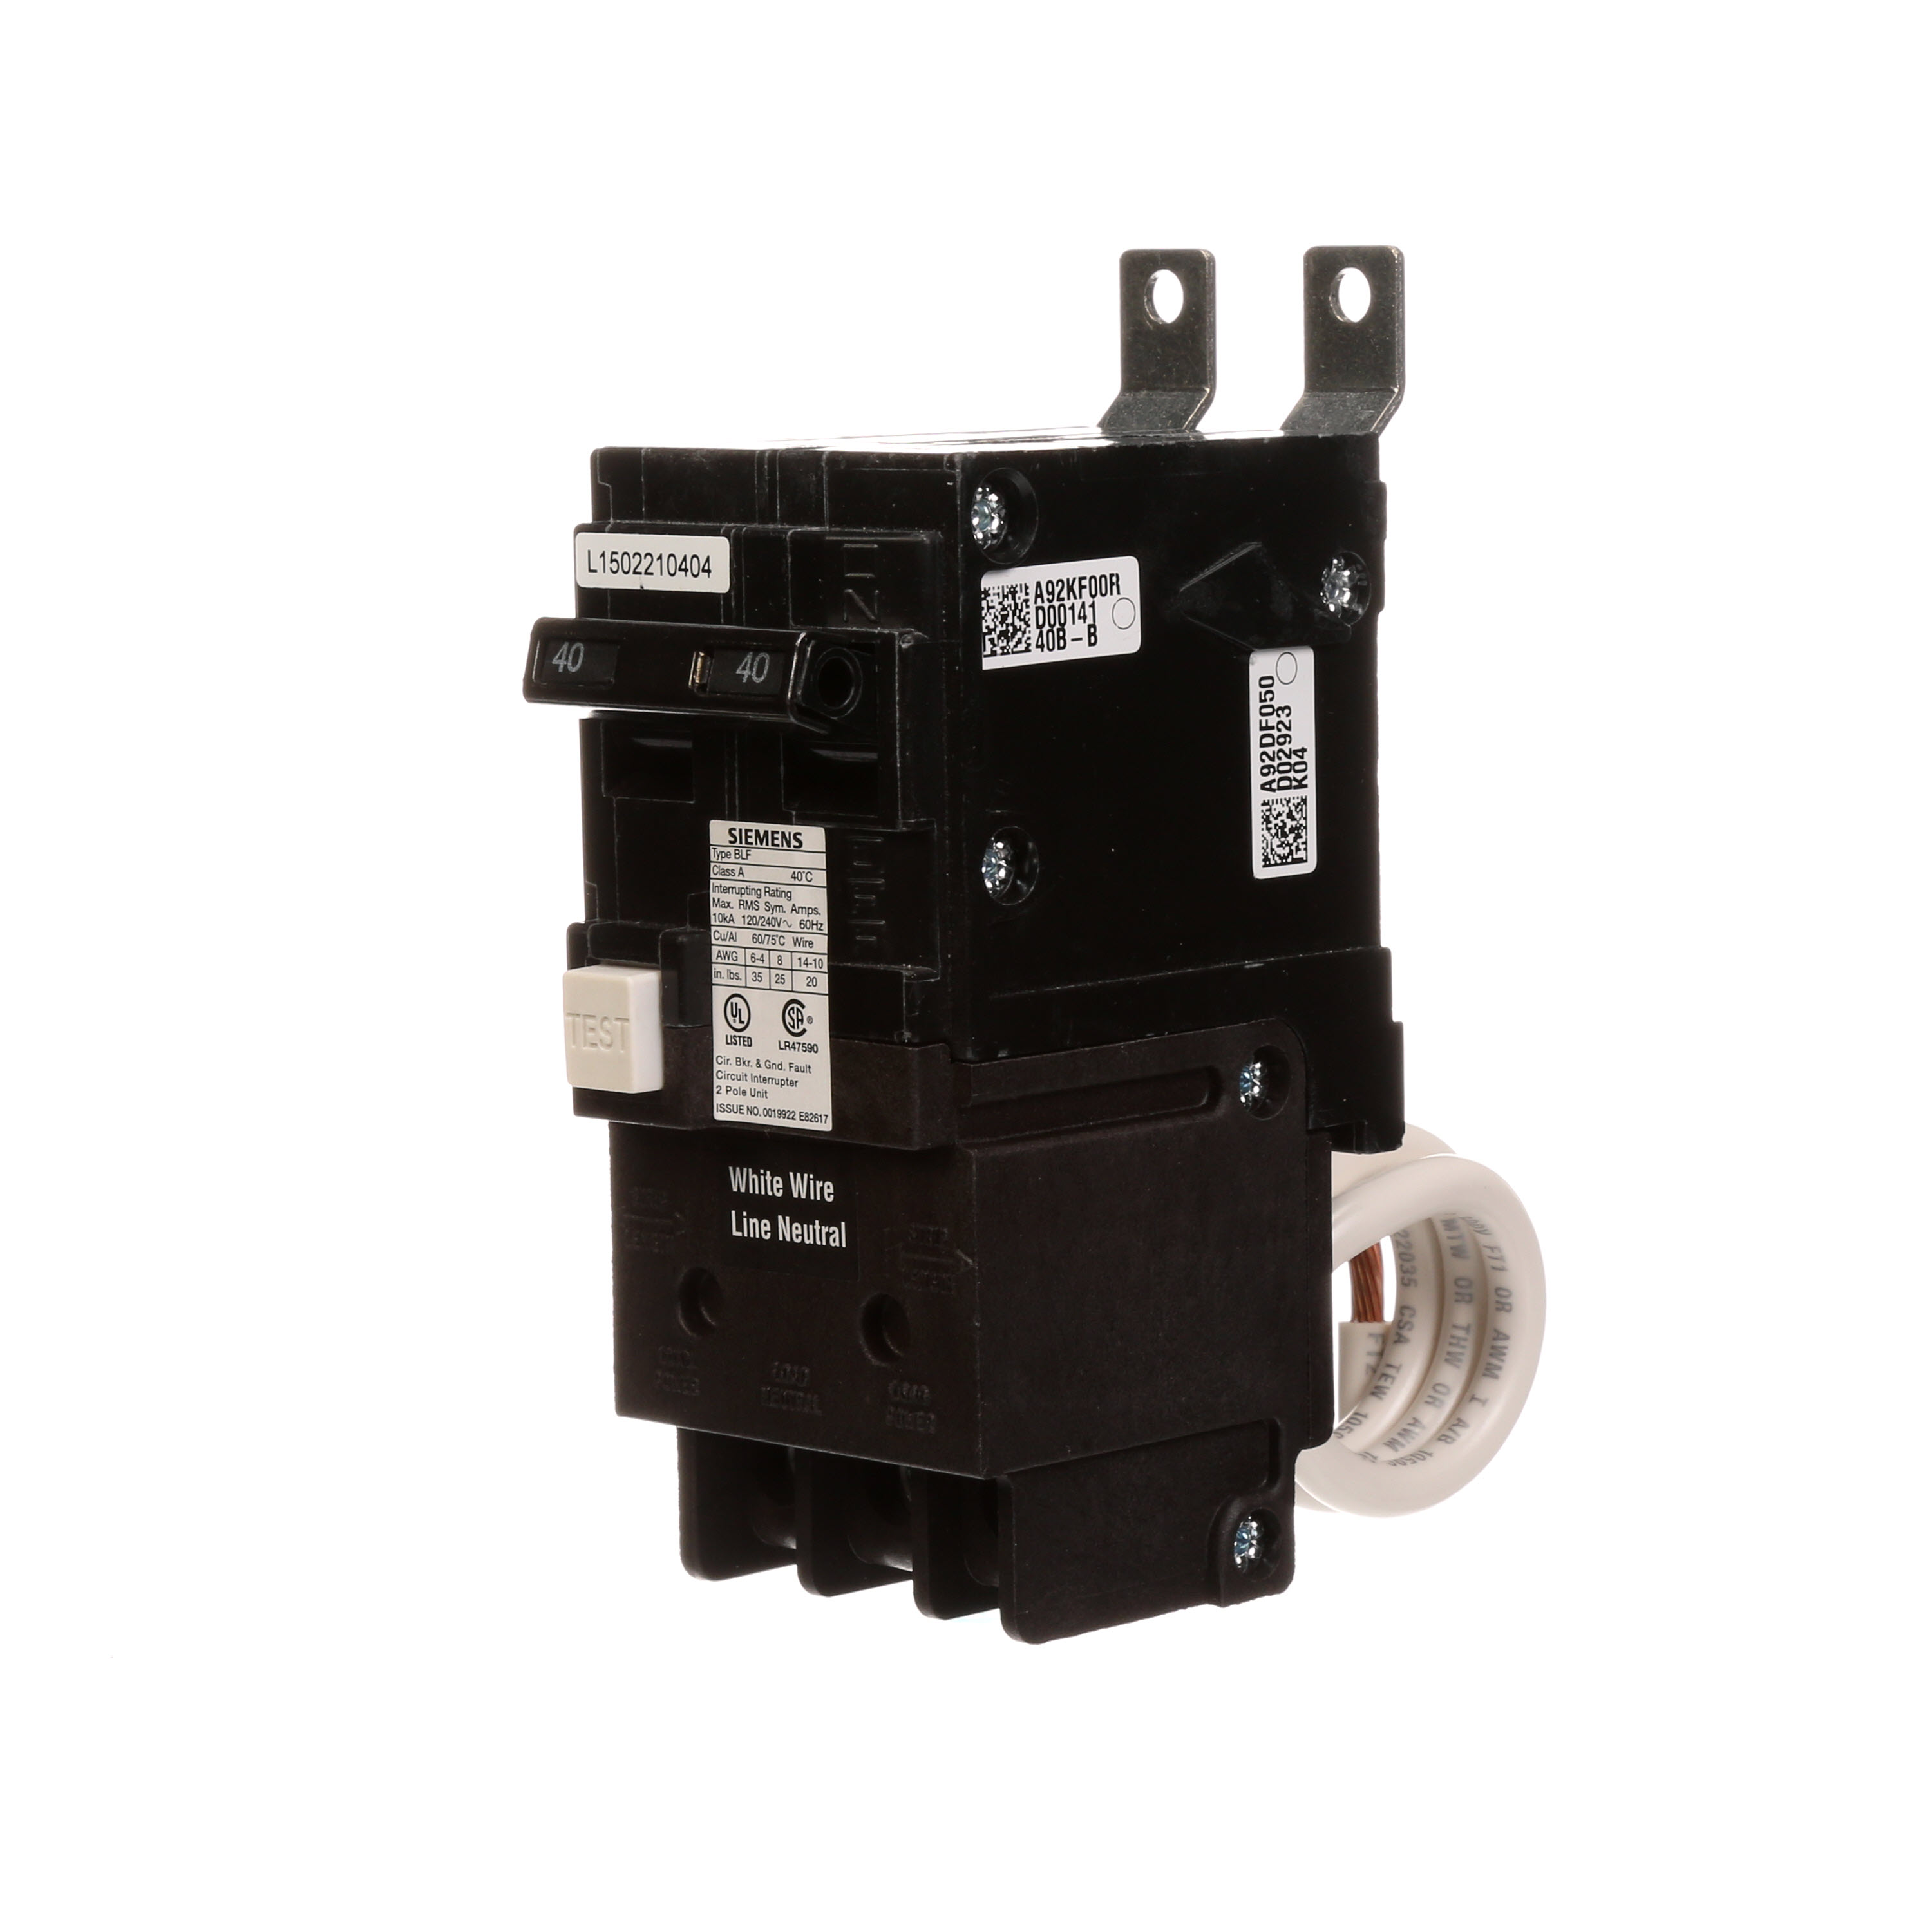 Distribution Equipment Circuit Breakers Ground Arc Fault Breaker Interrupters Afcis Sie Bf240 Grd Cir